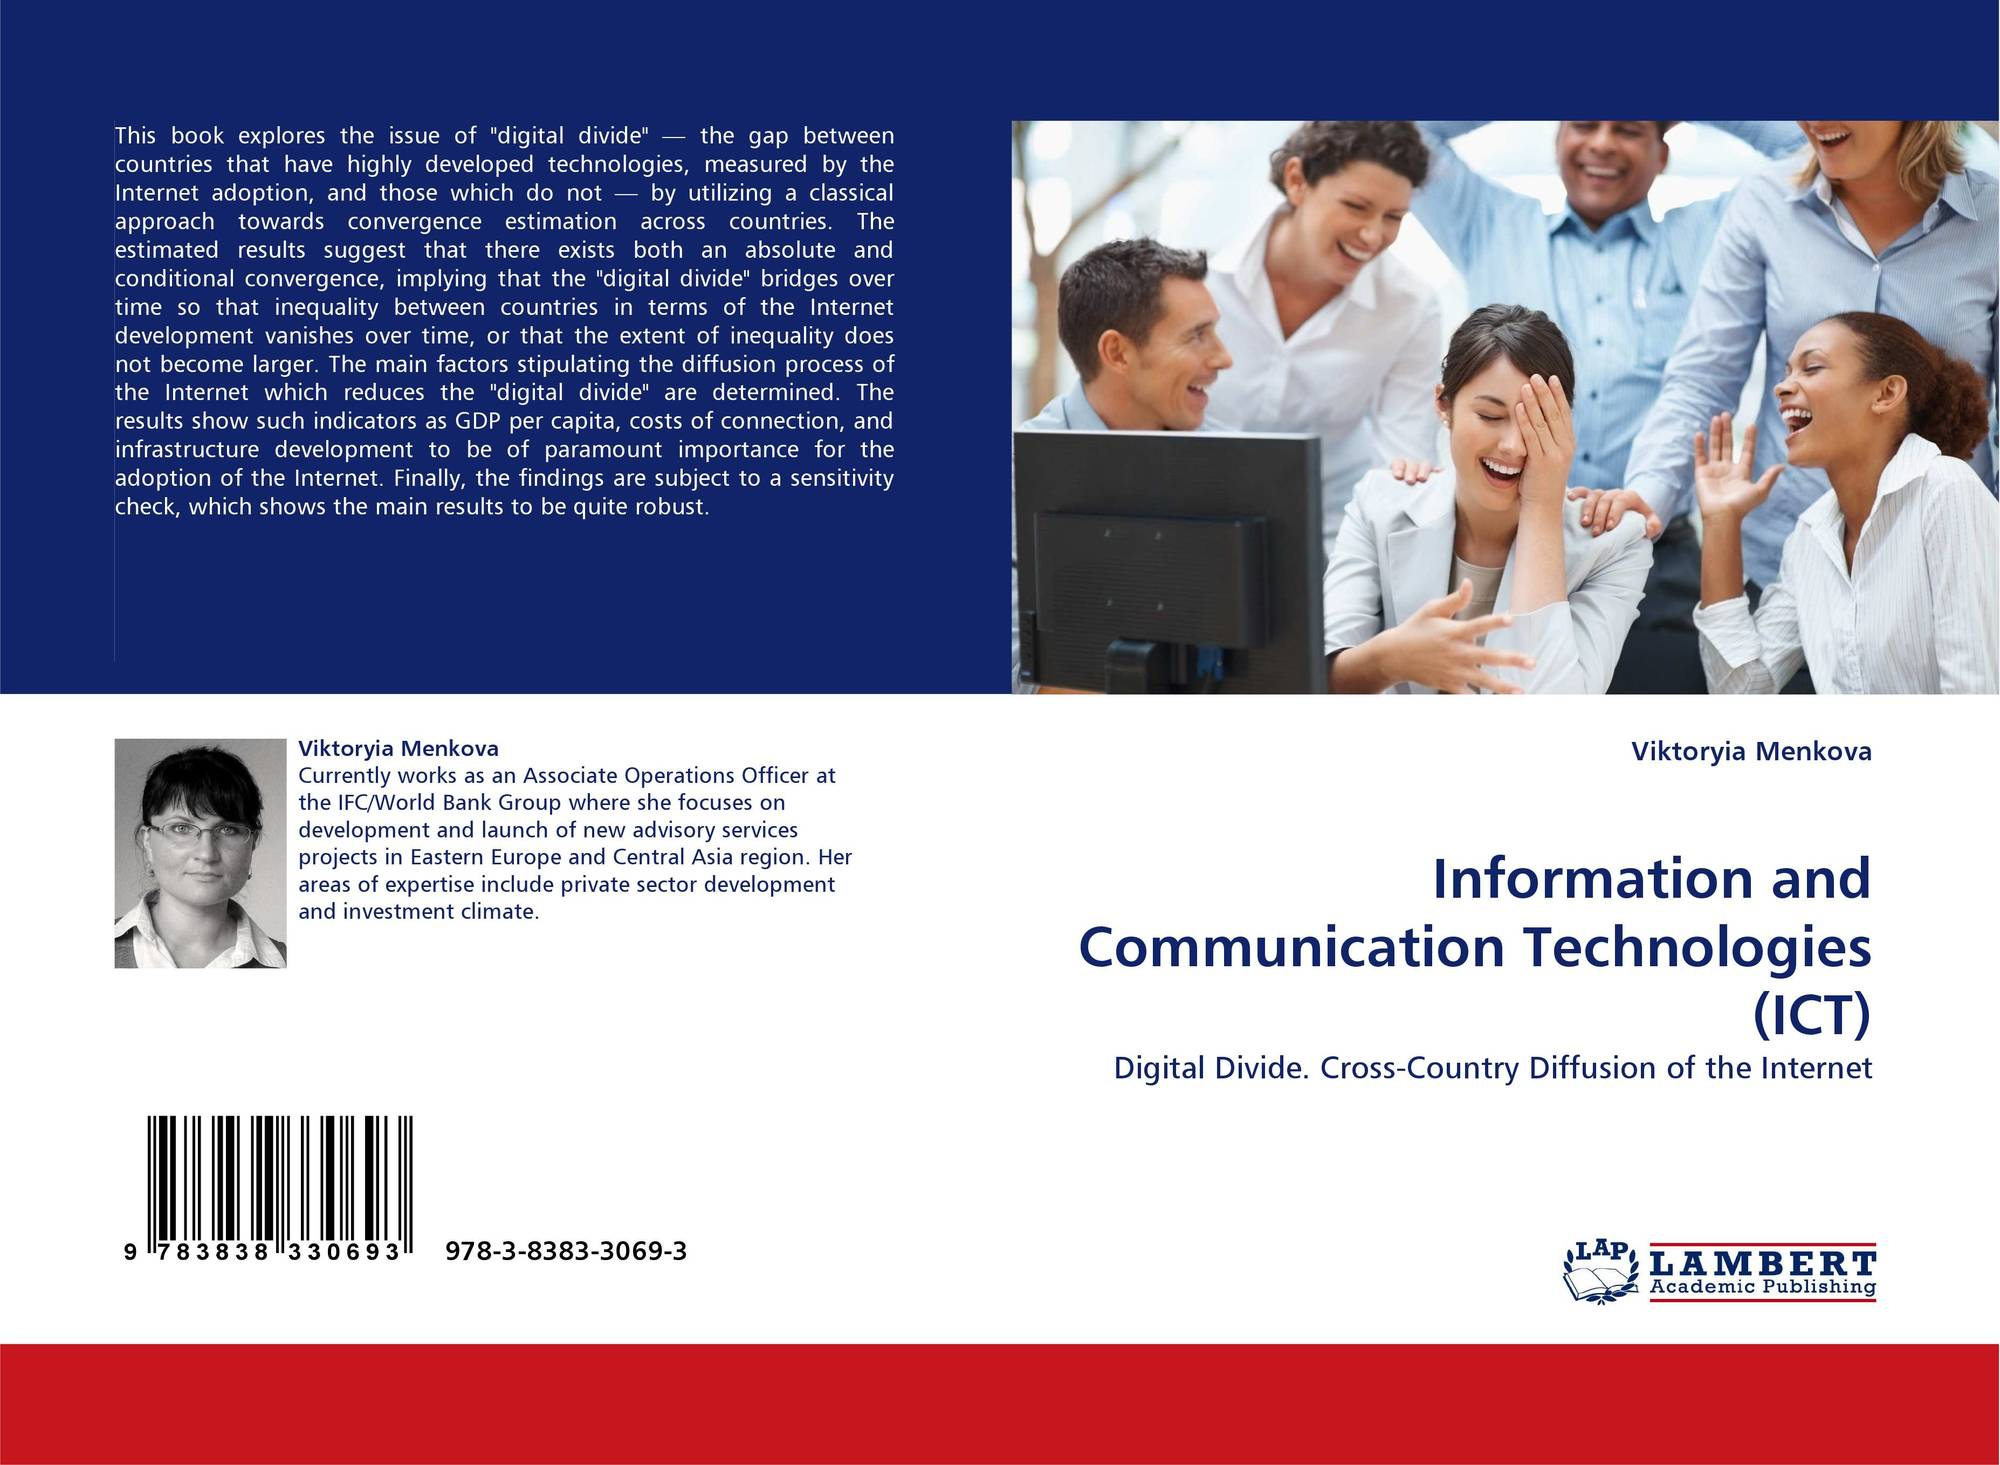 a chapter by chapter critique of the first draft of information and communication techologies ict po Harmonizing cyberlaws and regulations: the first paragraph for chapter 6 read the development implications of information and communication technologies.